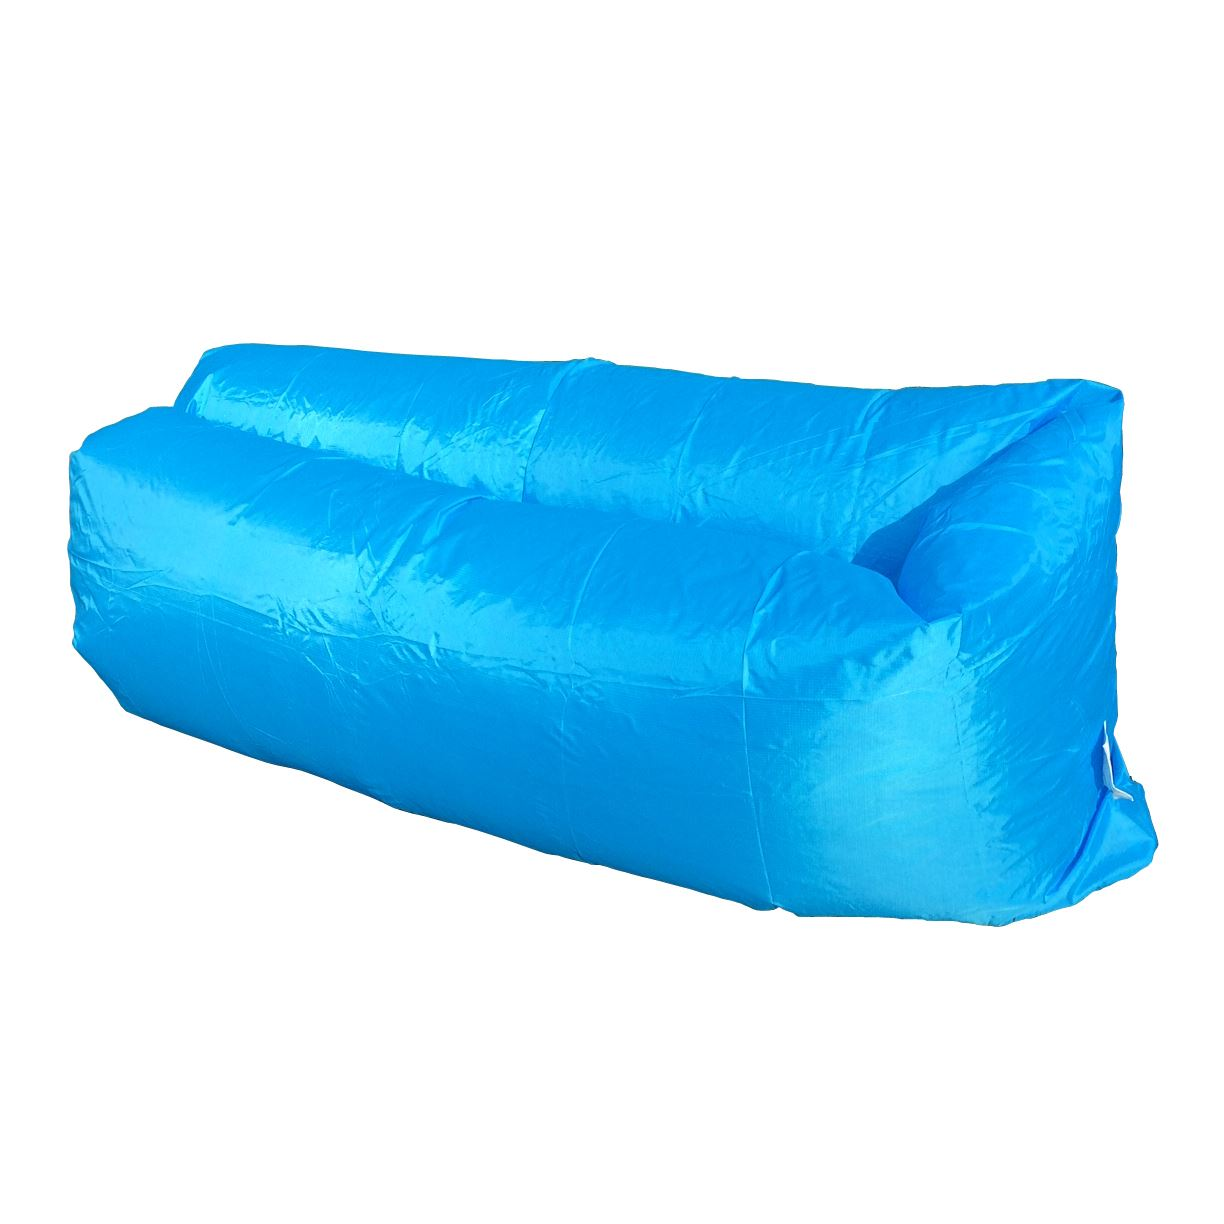 couch slip covers images air o space sofa inte sofa bed dyson groom